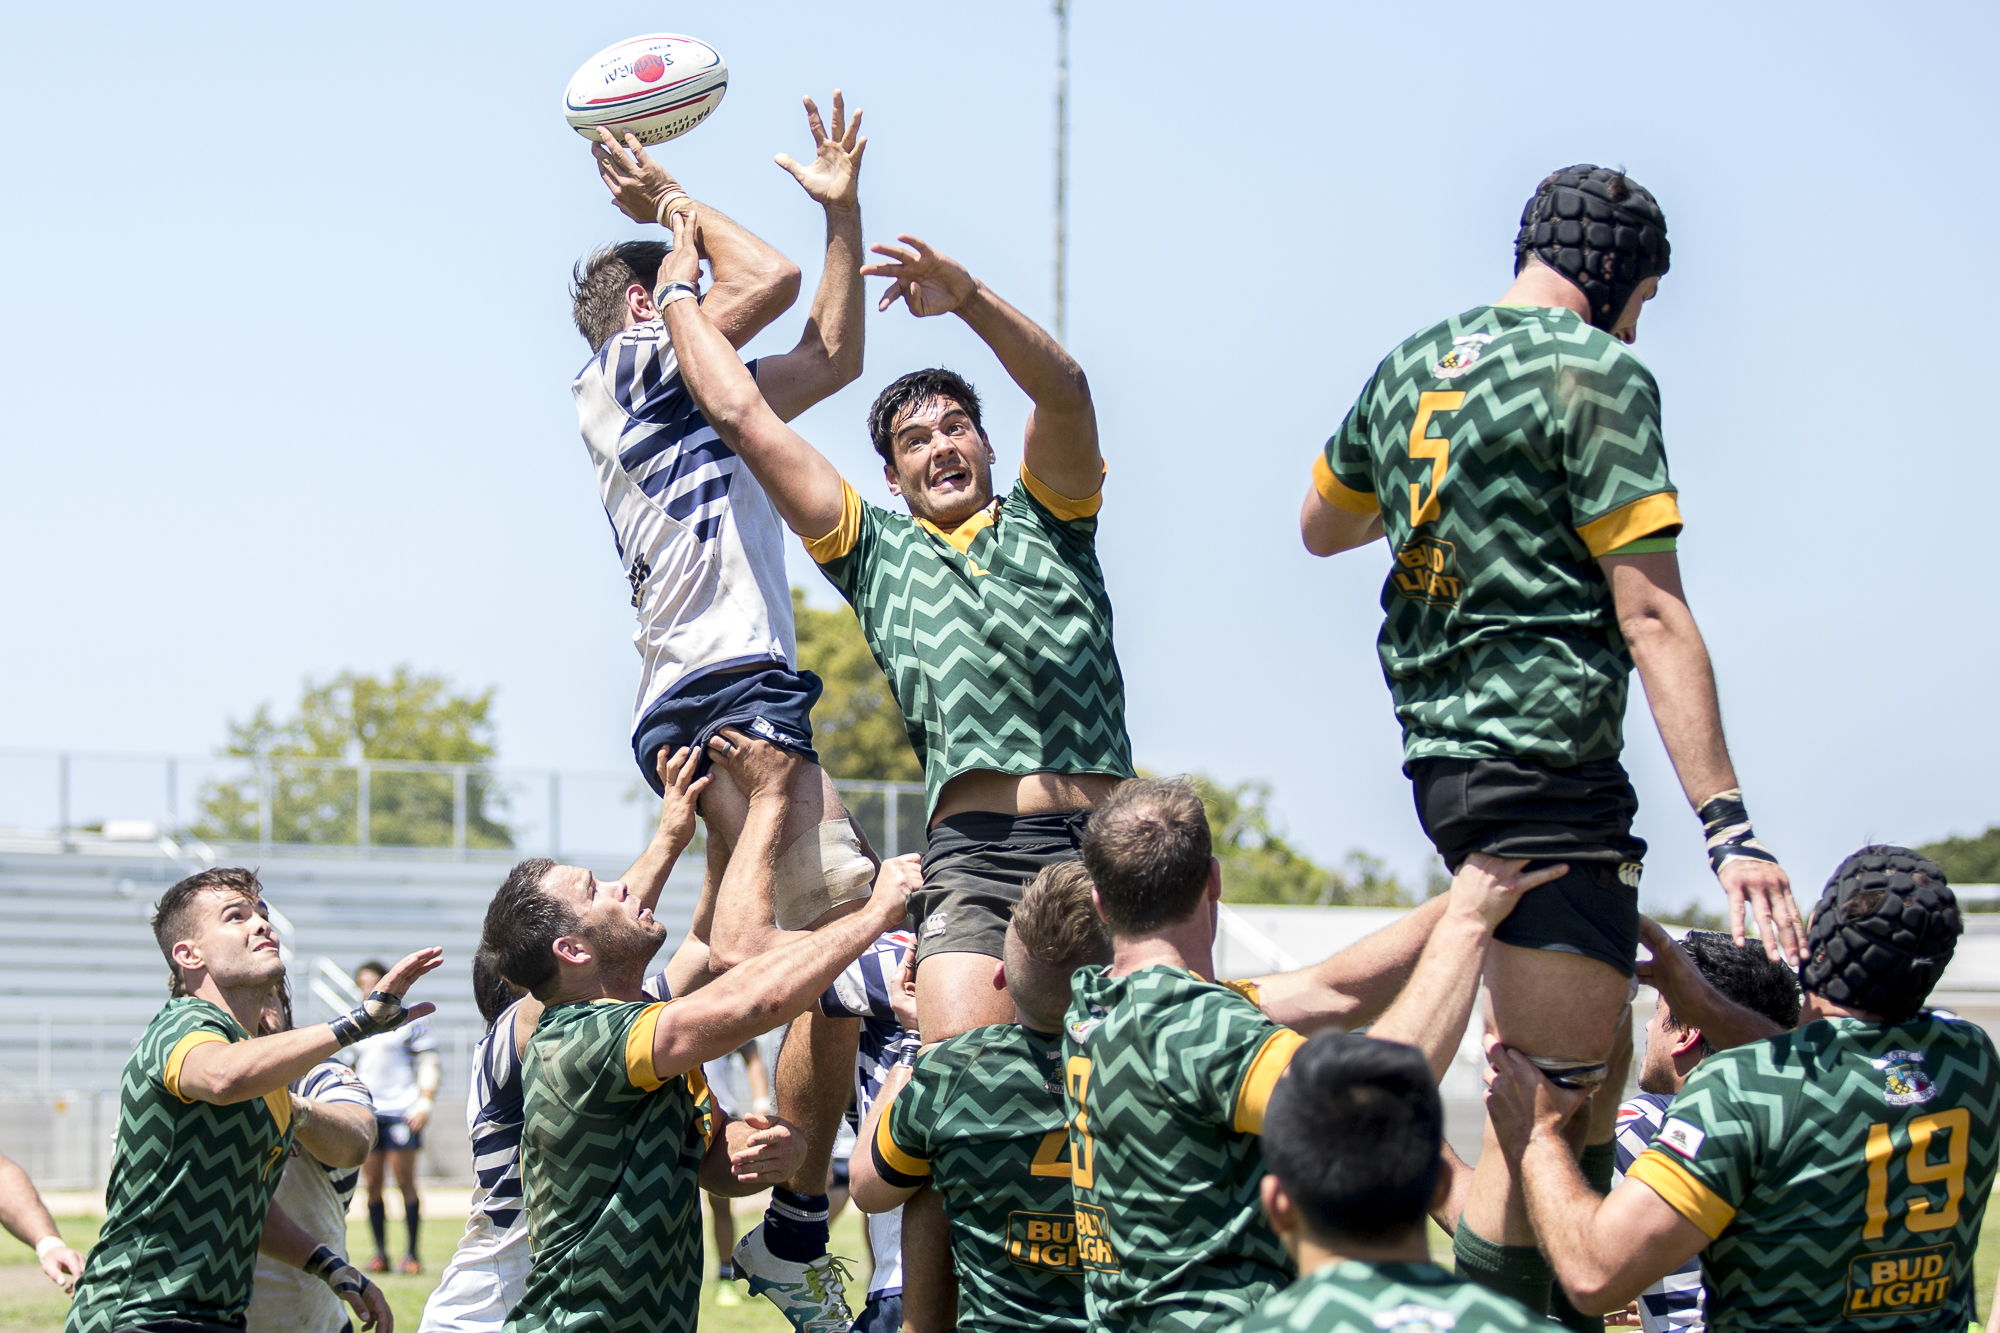 Santa Monica Dolphin Rugby forward Chris Allman #6 (center, green) fails to intercept the lineout throw while competing against Old Mission Beach Athletic Club (OMBAC), which was held at Westchester High School in Westchester California on Saturday April 28 2018. The Santa Monica Dolphins would go on to lose the game 7-26 during Saturdays game. (Matthew Martin/Corsair Photo)